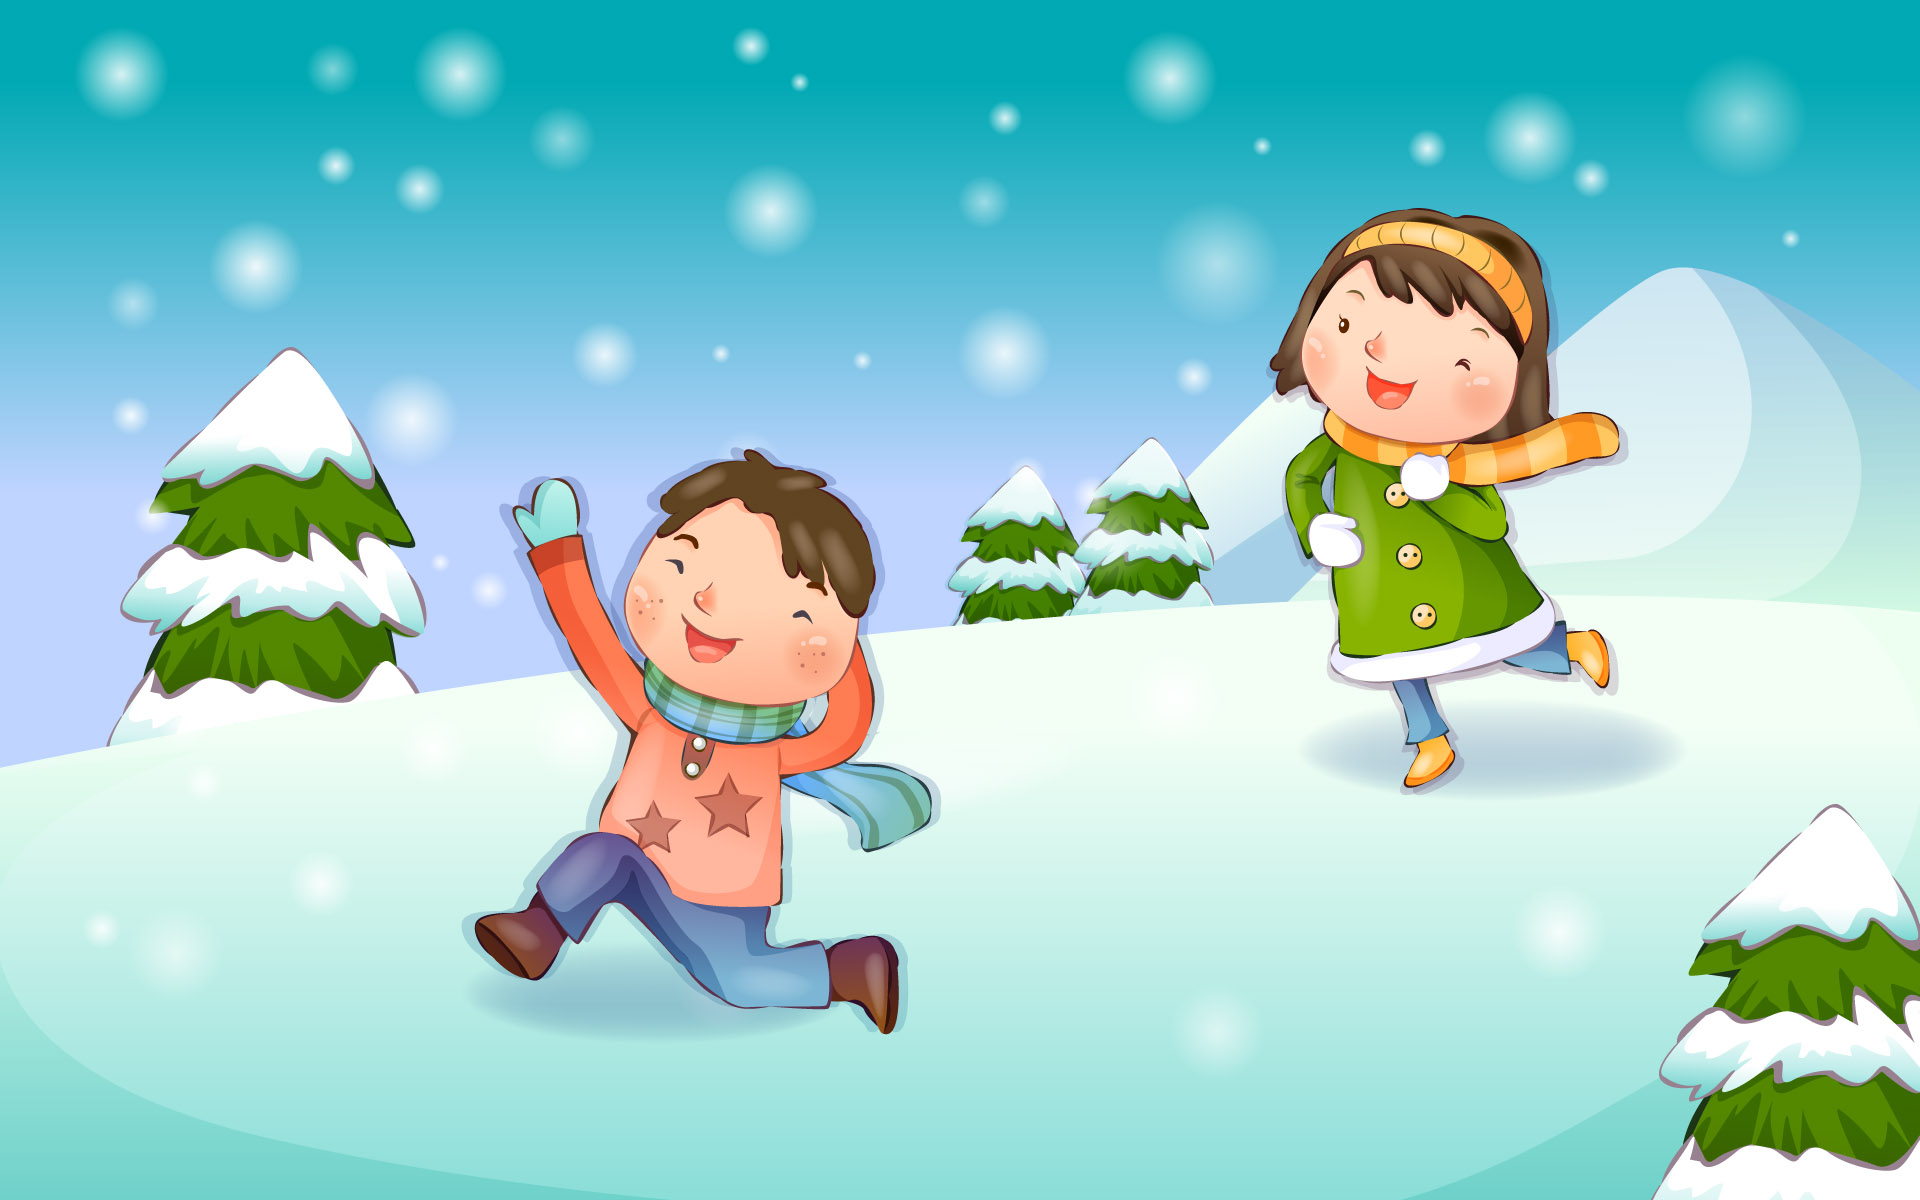 Happy childhood Christmas illustration articles 14026